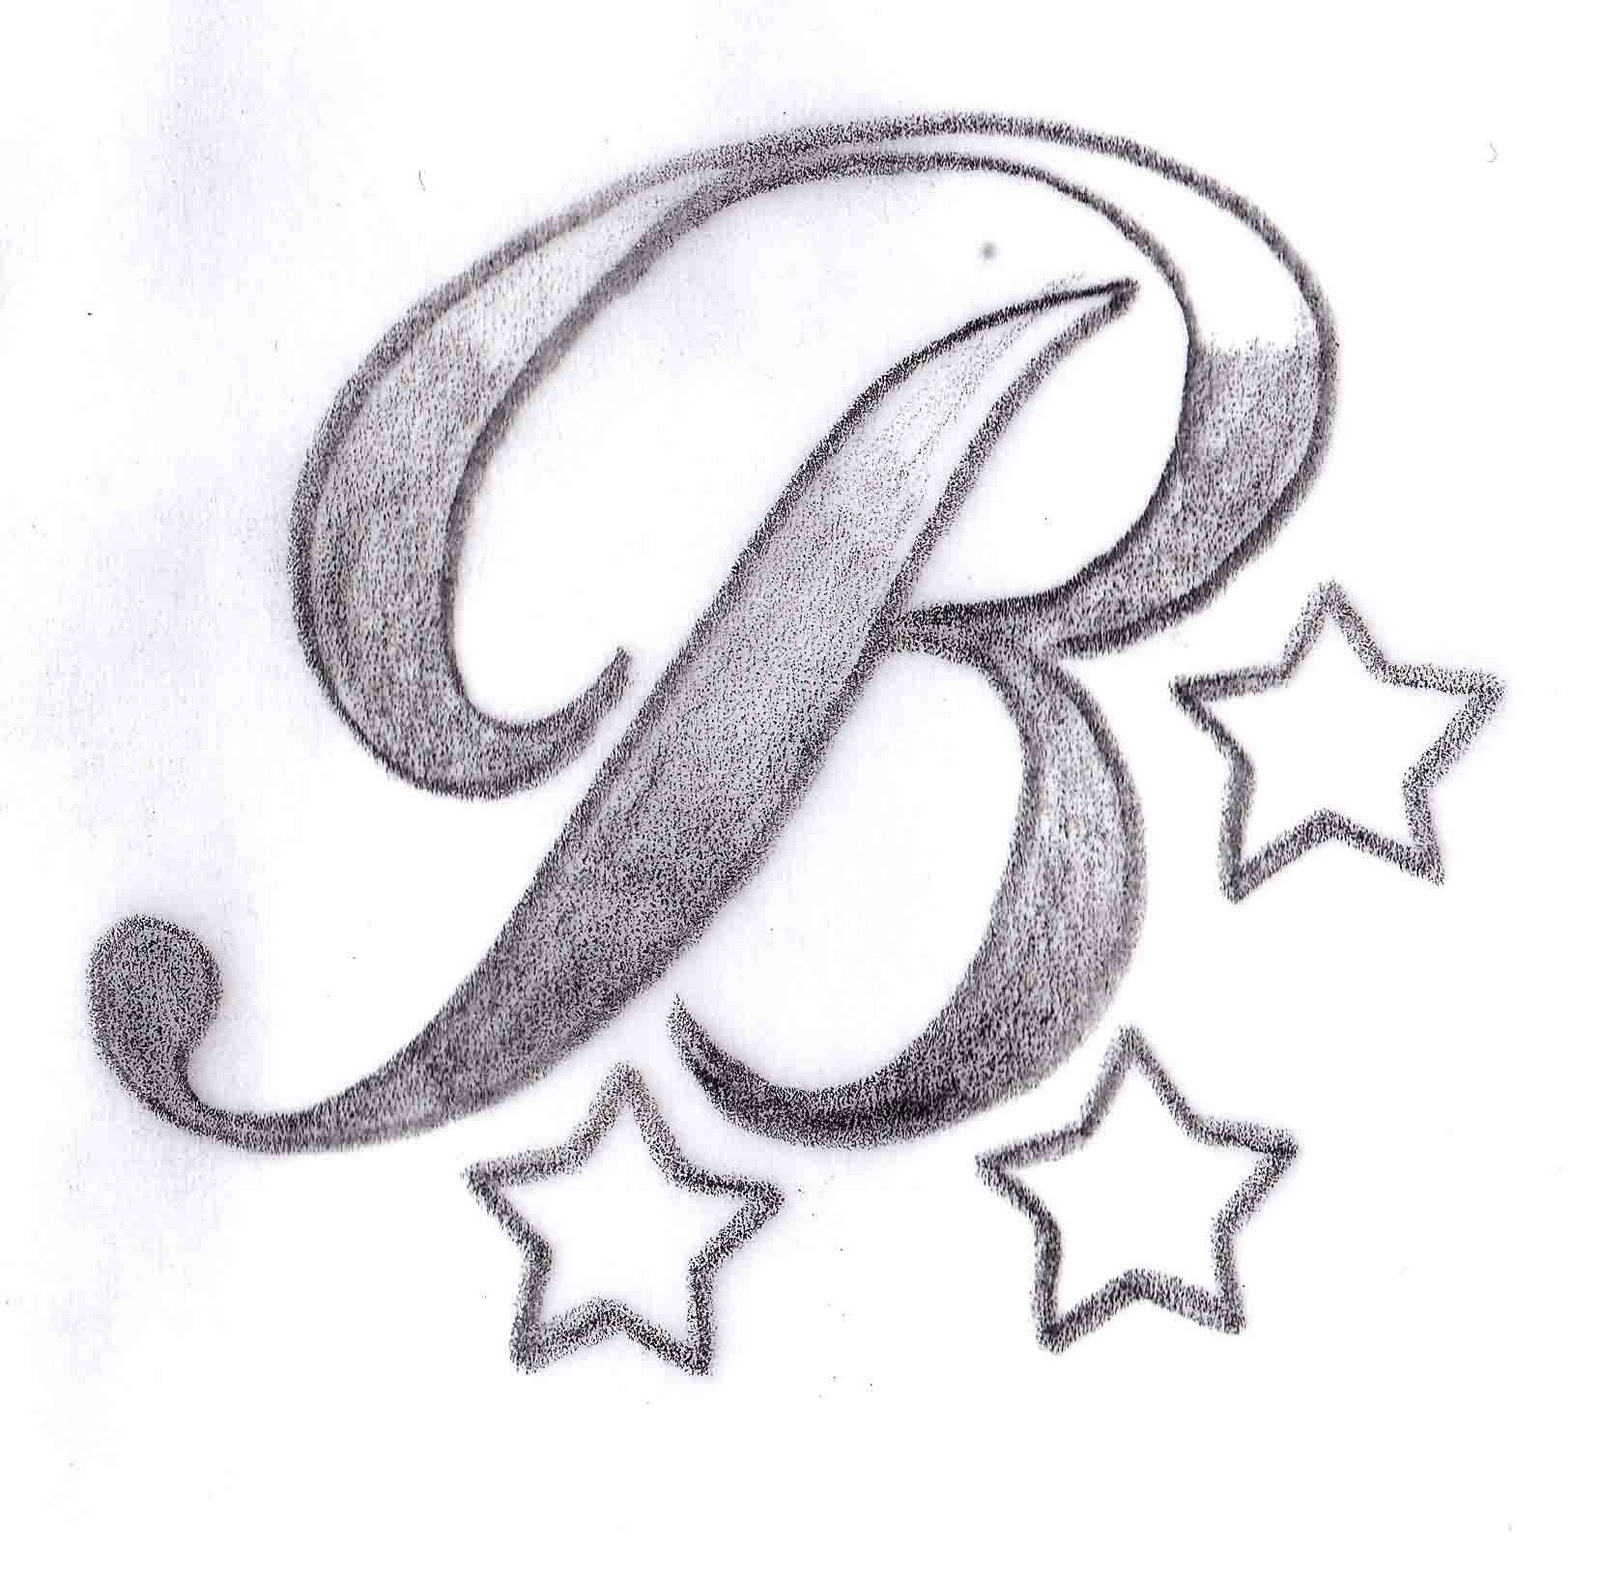 Tattoo Designs With Letter M: Russell Butler: B Tattoo Design